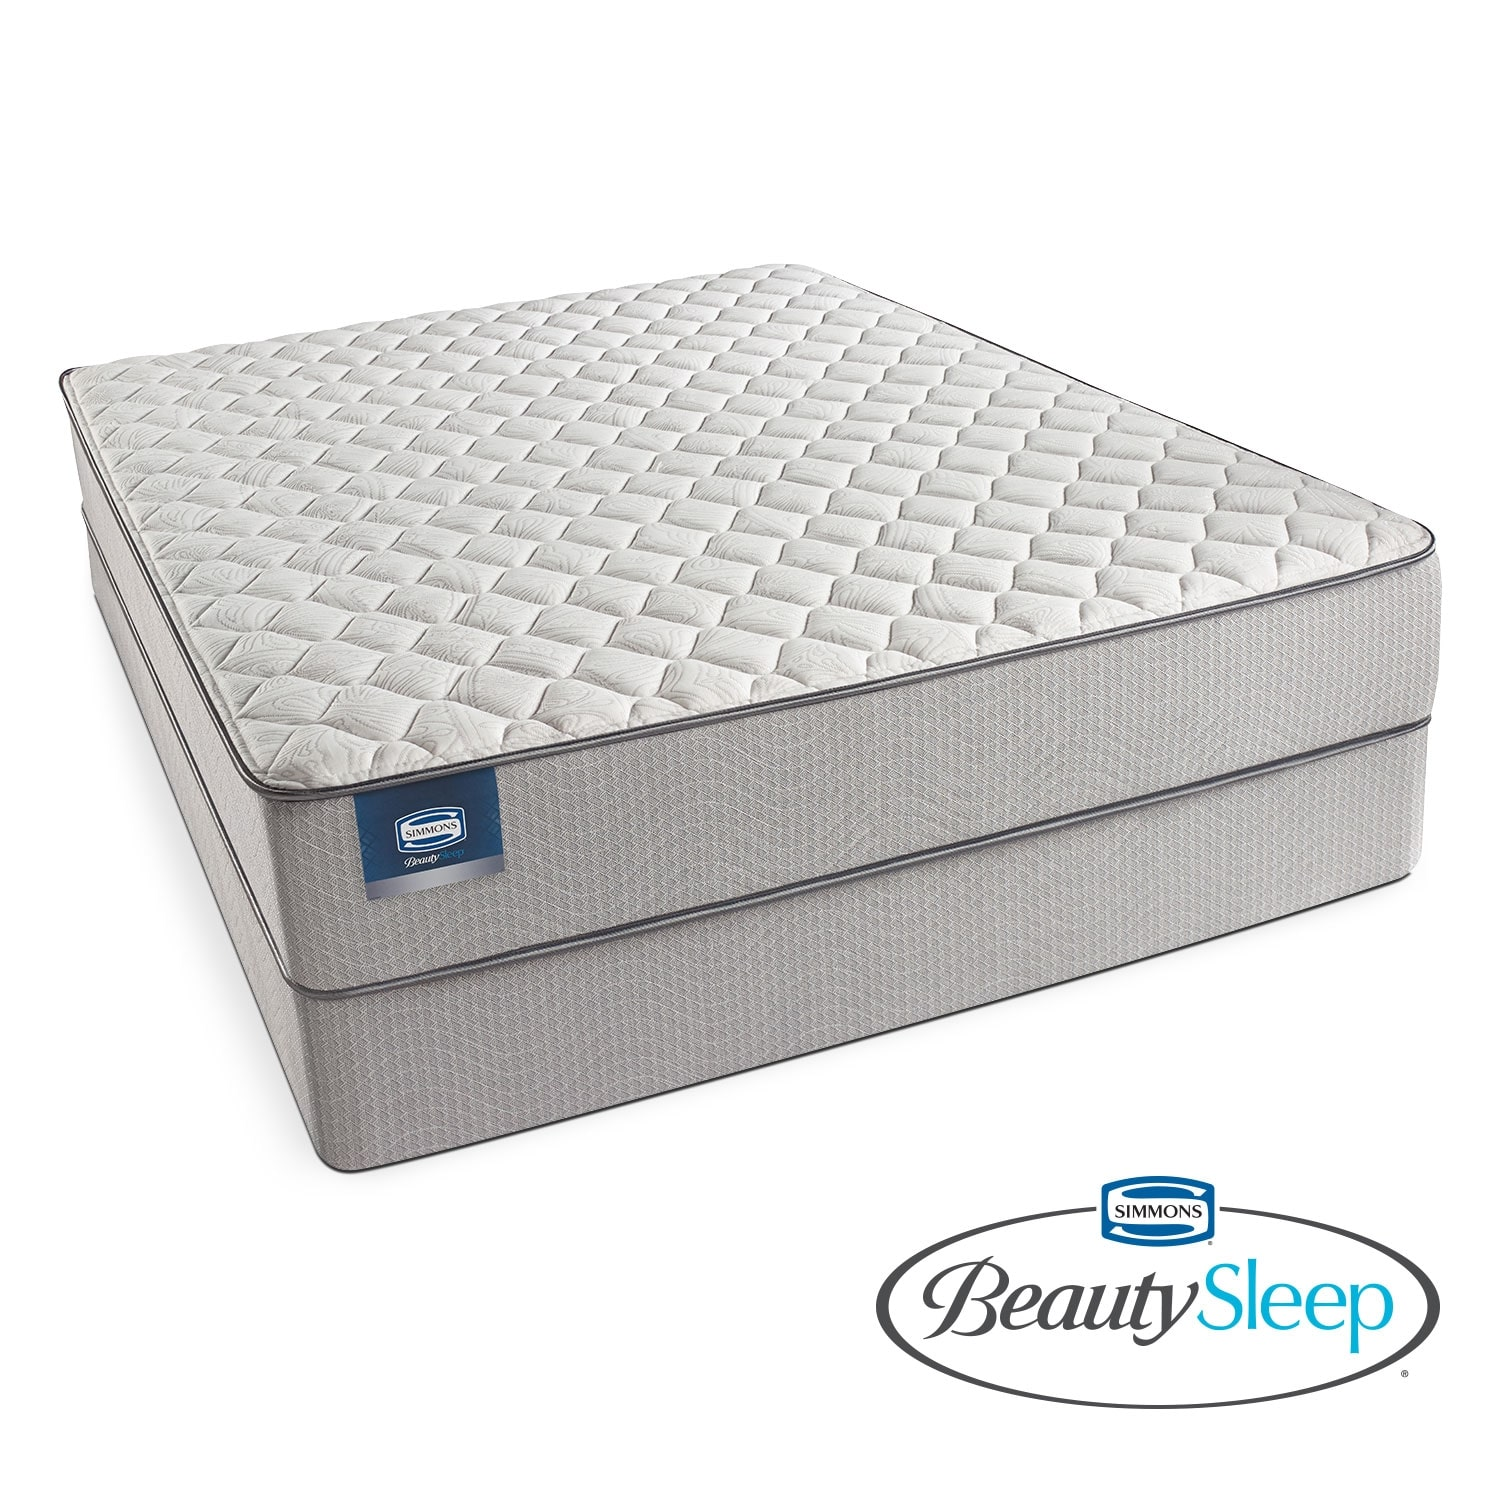 Mattresses and Bedding - Canal St. Firm King Mattress and Split Low-Profile Foundation Set